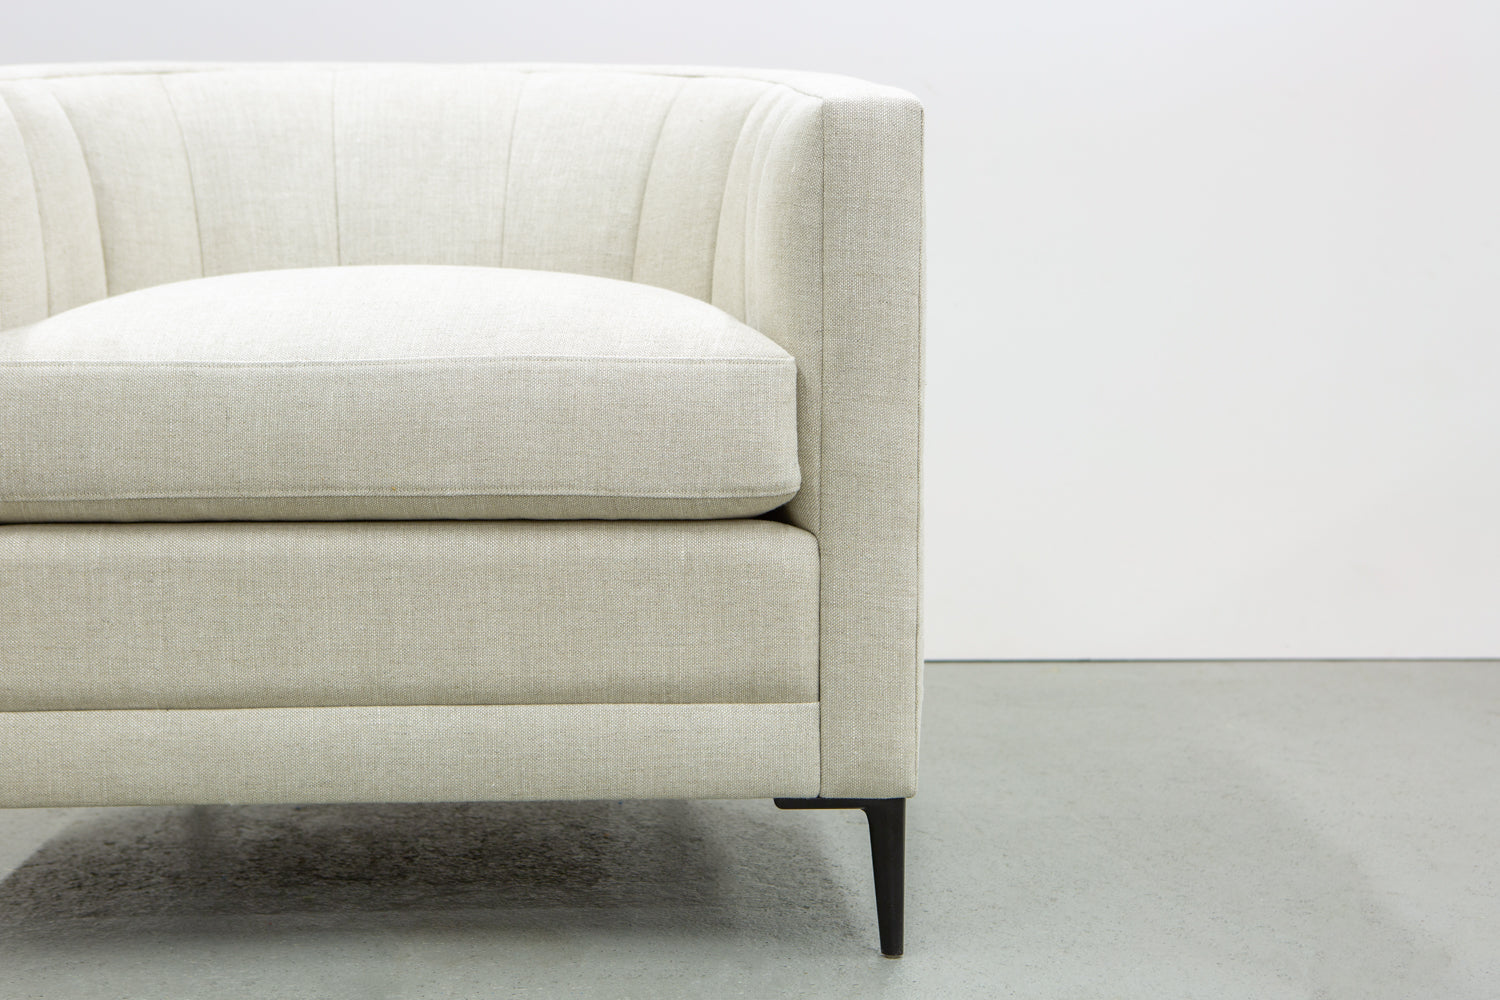 Front profile image of ffabb home Coco Chair upholstered in Linen - Oatmeal